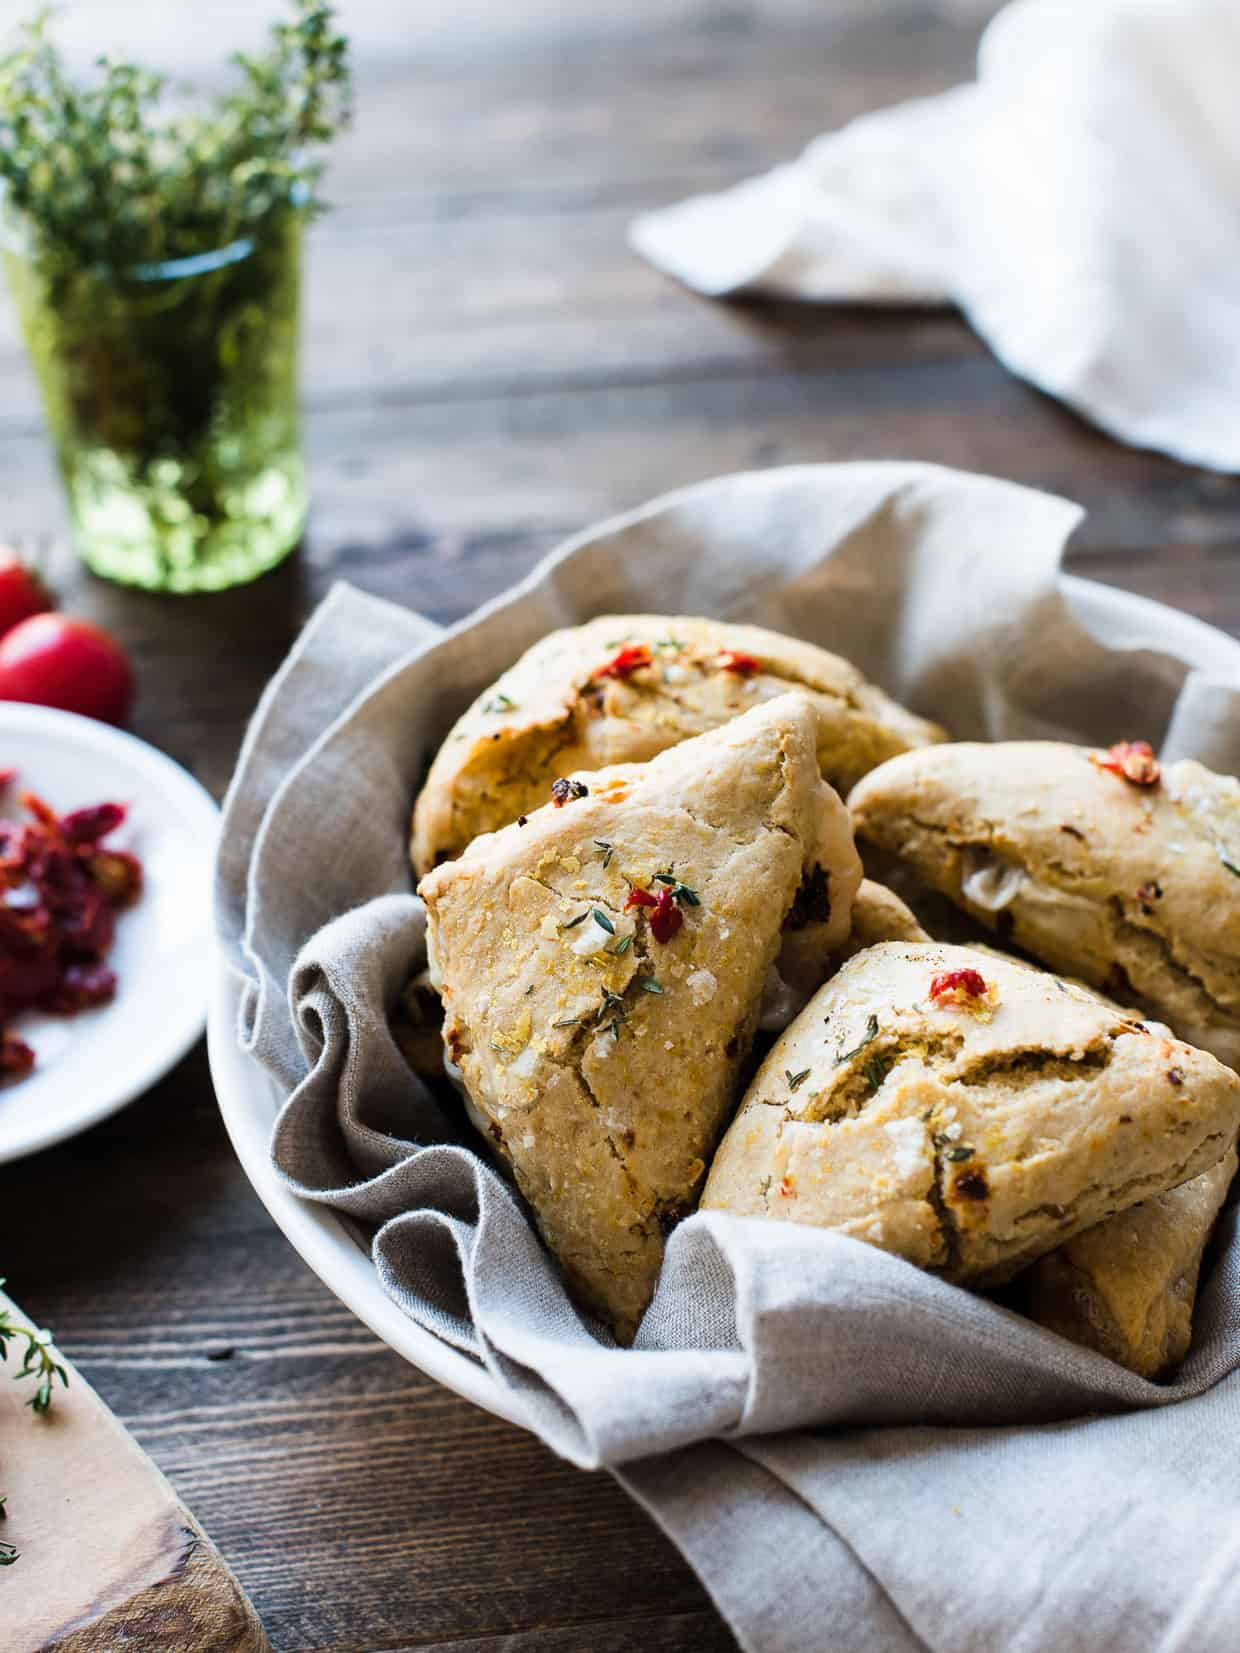 Sun-dried Tomato and Thyme Scones (Vegan)